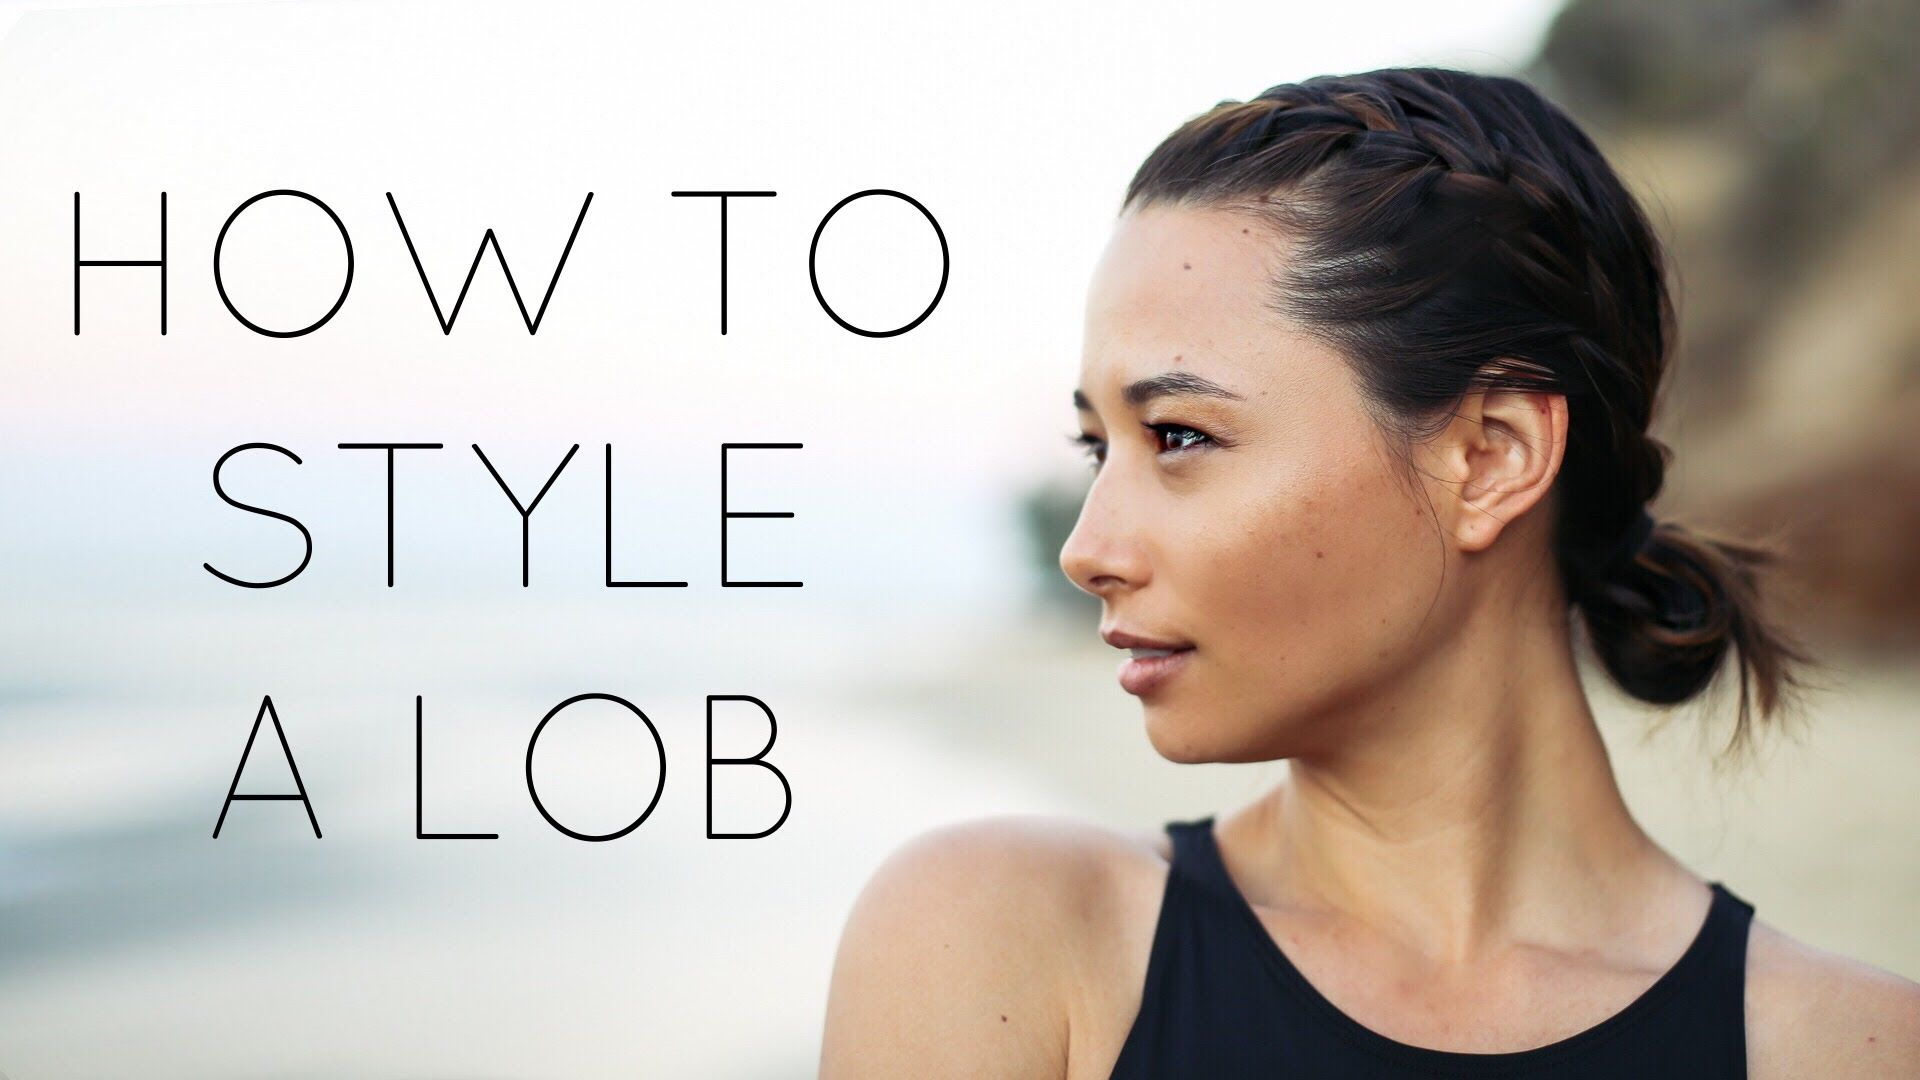 6 Easy Ways To Style Short/Medium Length Hair (Lob)